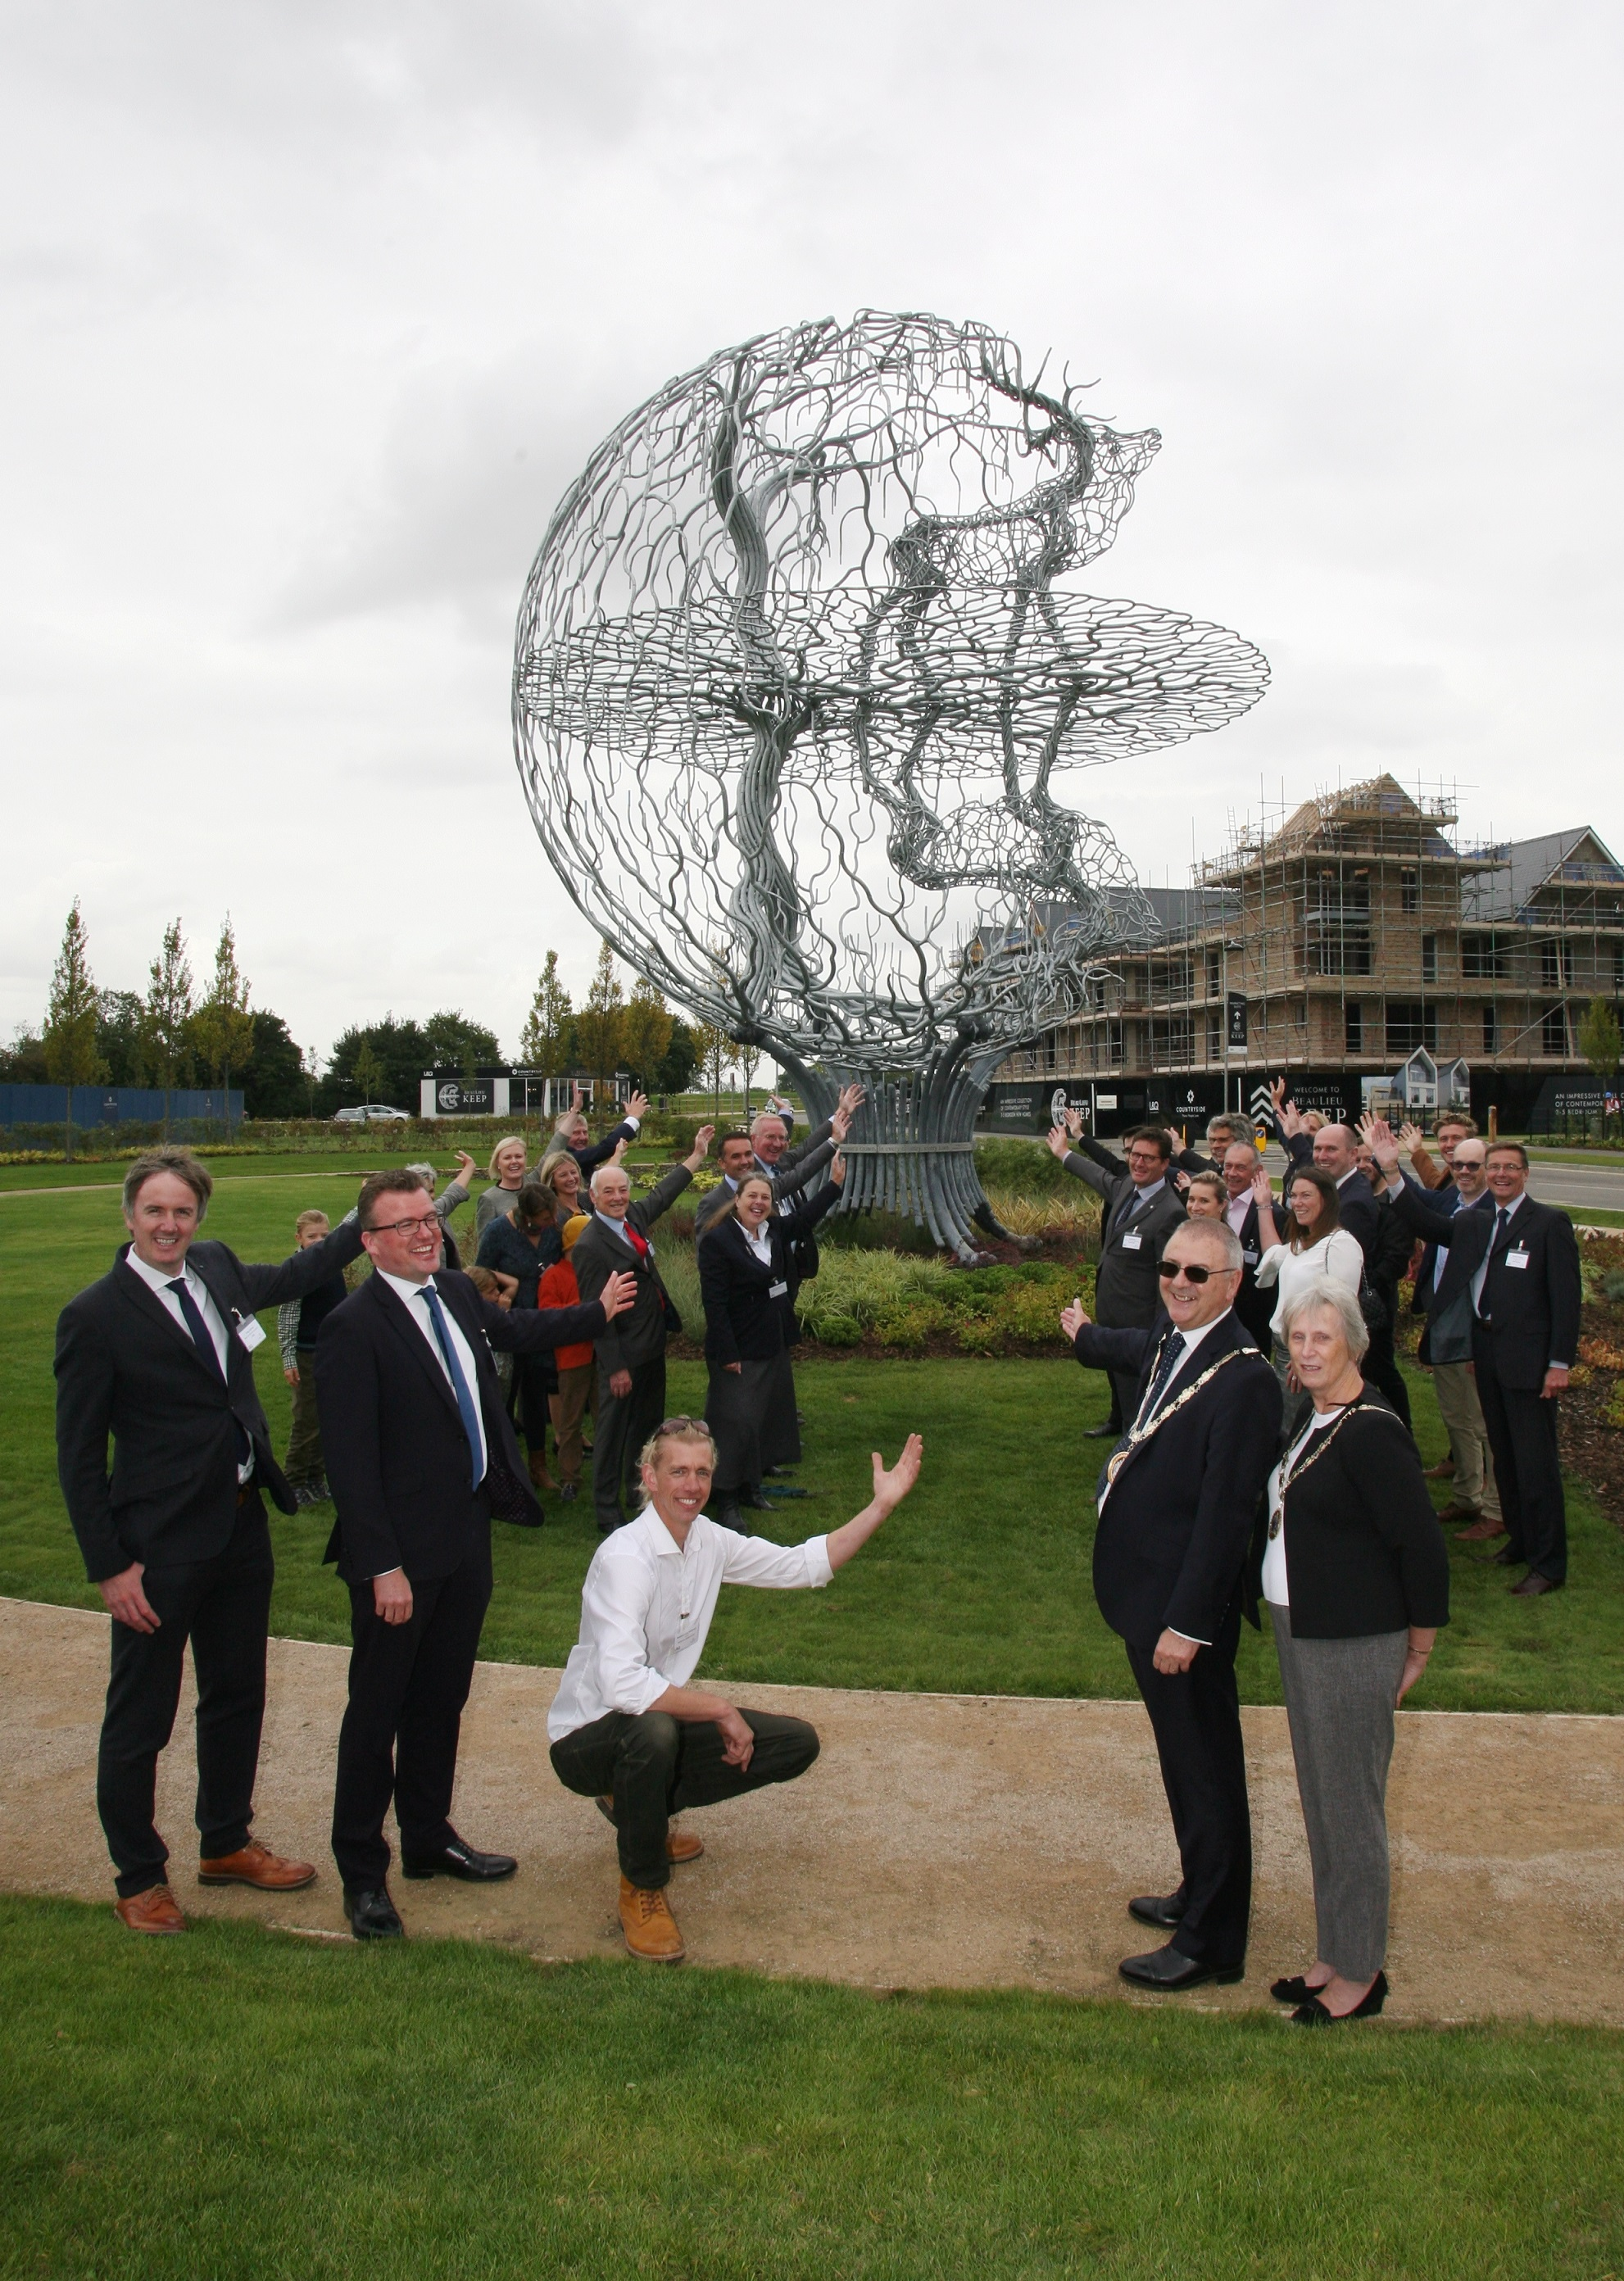 The unveiling of the 'Crowned Stag' at Beaulieu